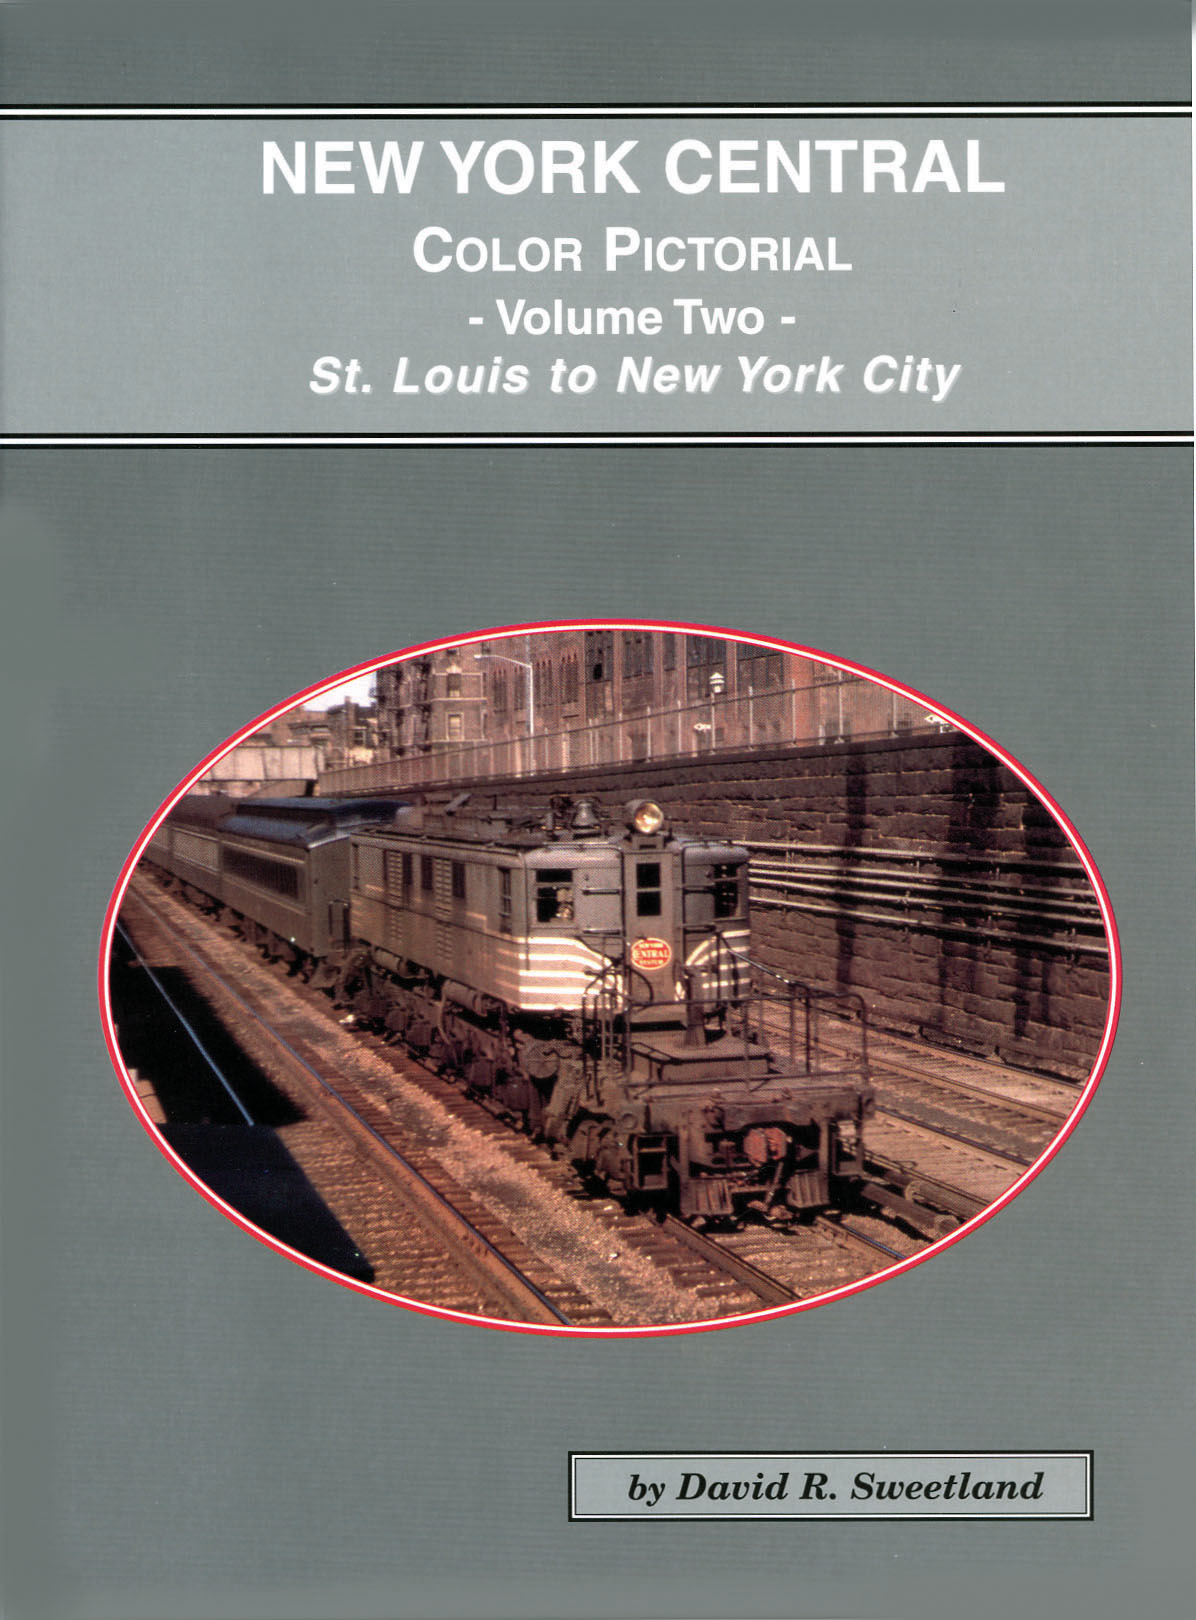 New York Central Vol 2